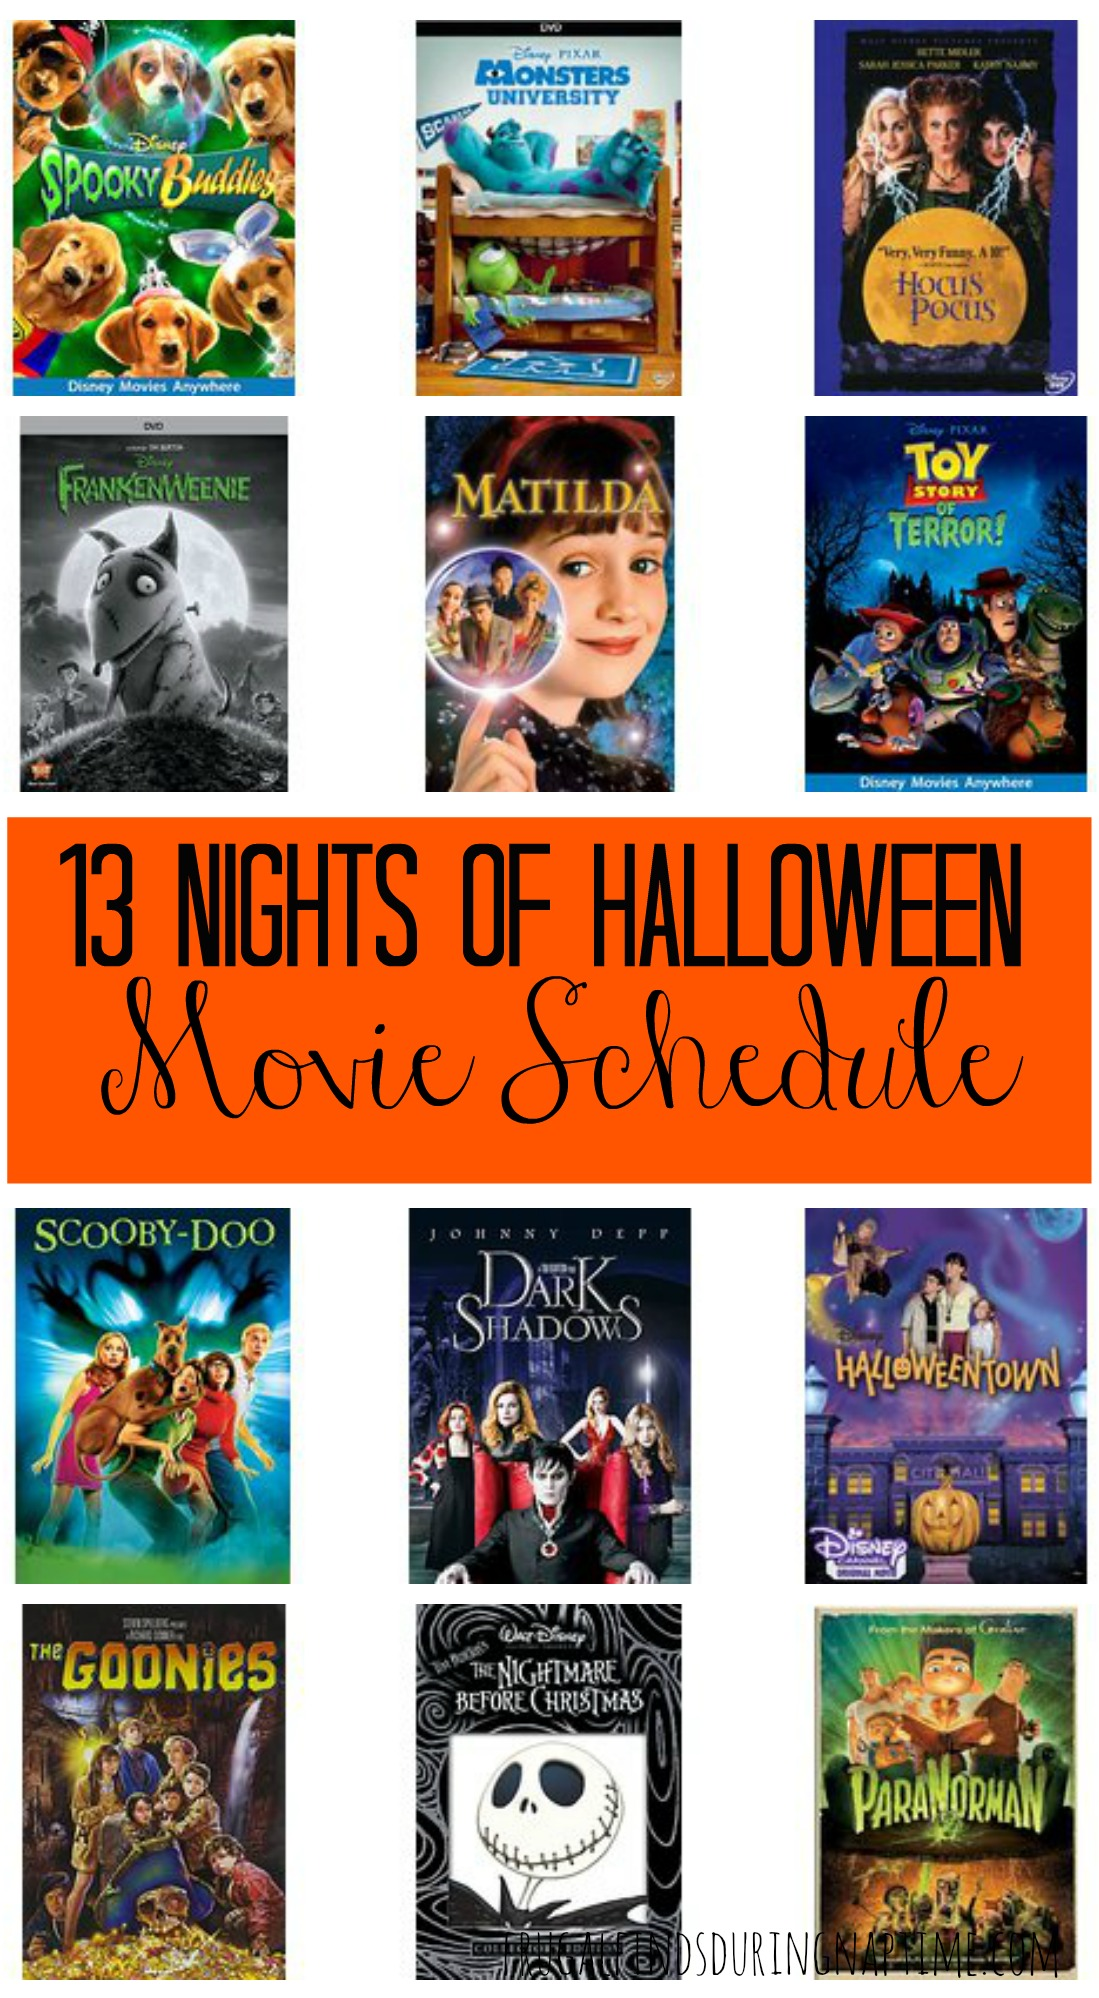 From scary to silly, and ghoul-y to gory, here is the 13 Nights of Halloween Movie Schedule.